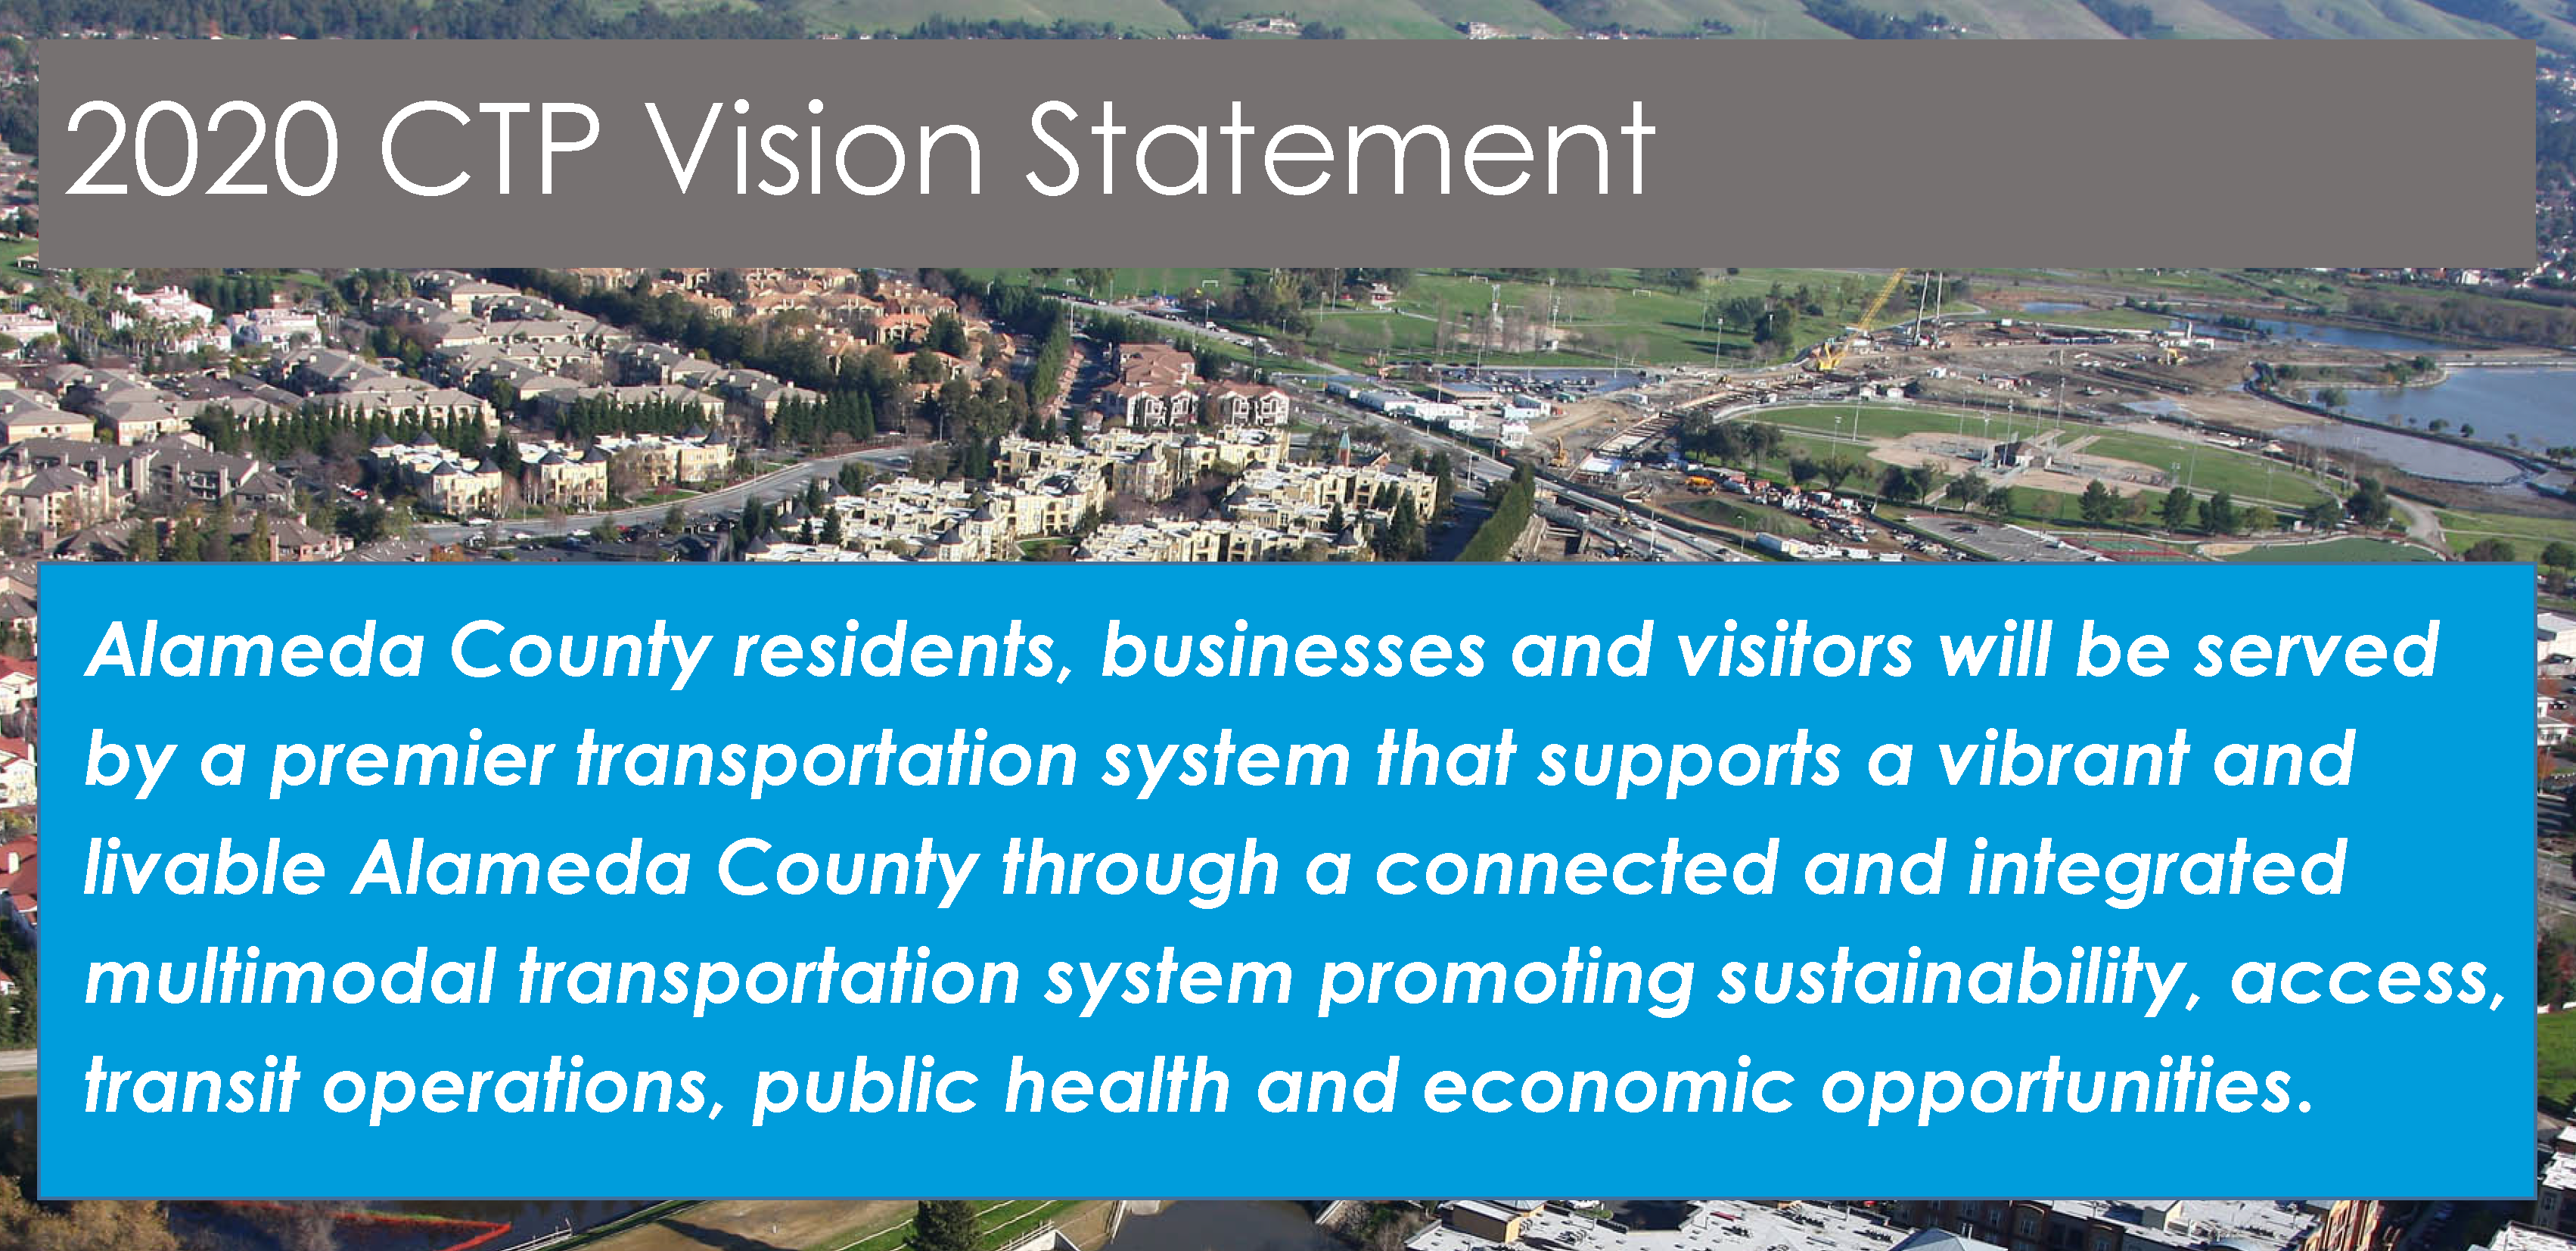 2020 CTP Vision Statement: Alameda County residents, businesses and visitors will be served by a premier transportation system that supports a vibrant and livable Alameda County through a connected and integrated multimodal transportation system promoting sustainability,access, transit operations, public health and economic opportunities.